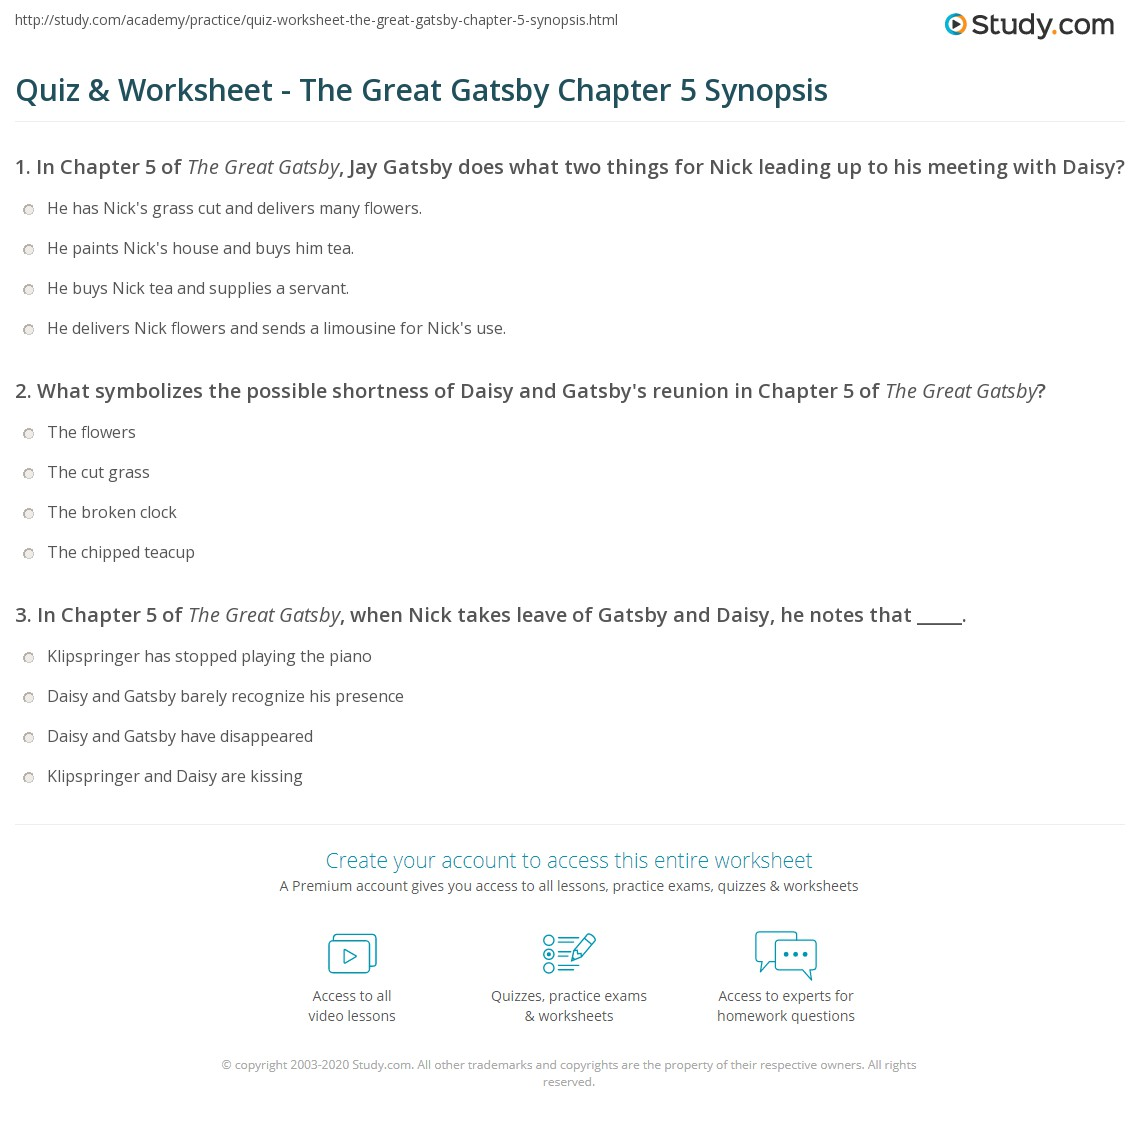 quiz worksheet the great gatsby chapter 5 synopsis study com rh study com Great Gatsby Fashion Great Gatsby Costumes